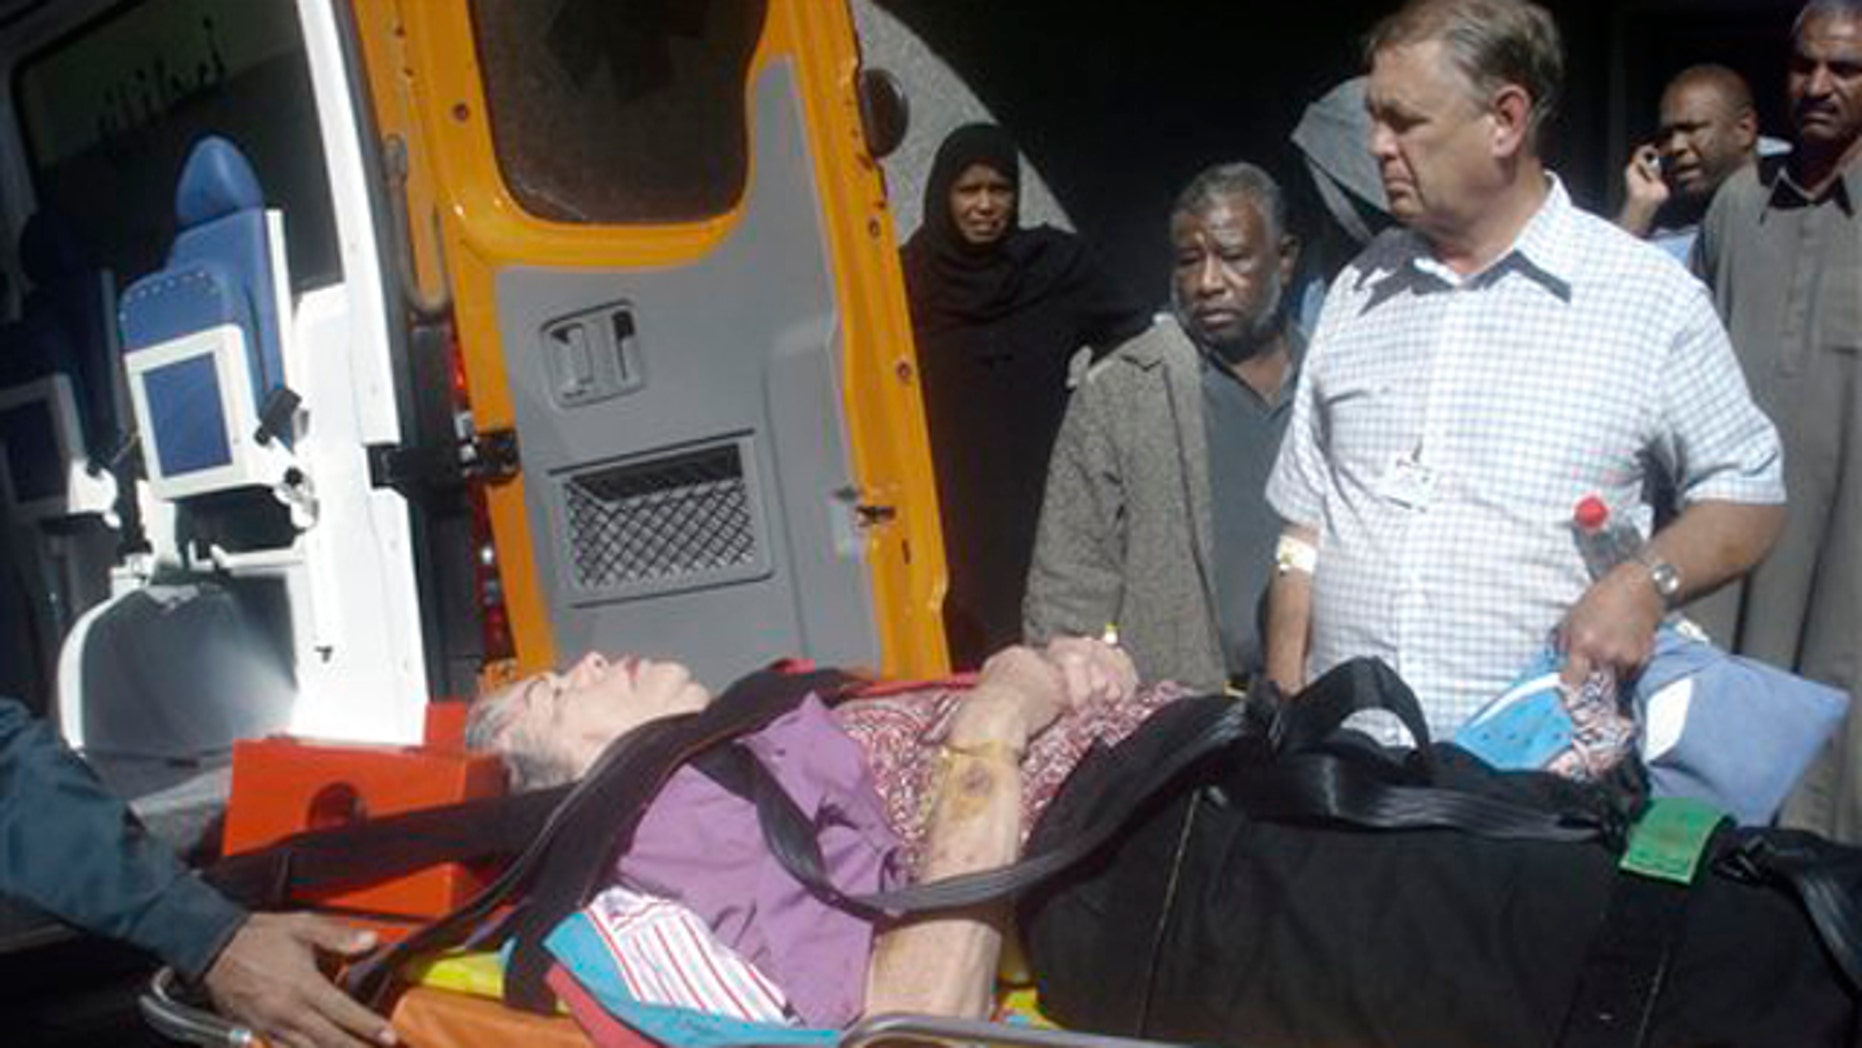 Dec. 26, 2010: An unidentified injured tour bus passenger is moved from an Aswan hospital into an ambulance headed to Aswan airport, to be flown to a hospital in Cairo, after a tour bus crashed into a truck on the 115 mile journey from Aswan to the ancient temples of Abu Simbel, near Aswan in Egypt.